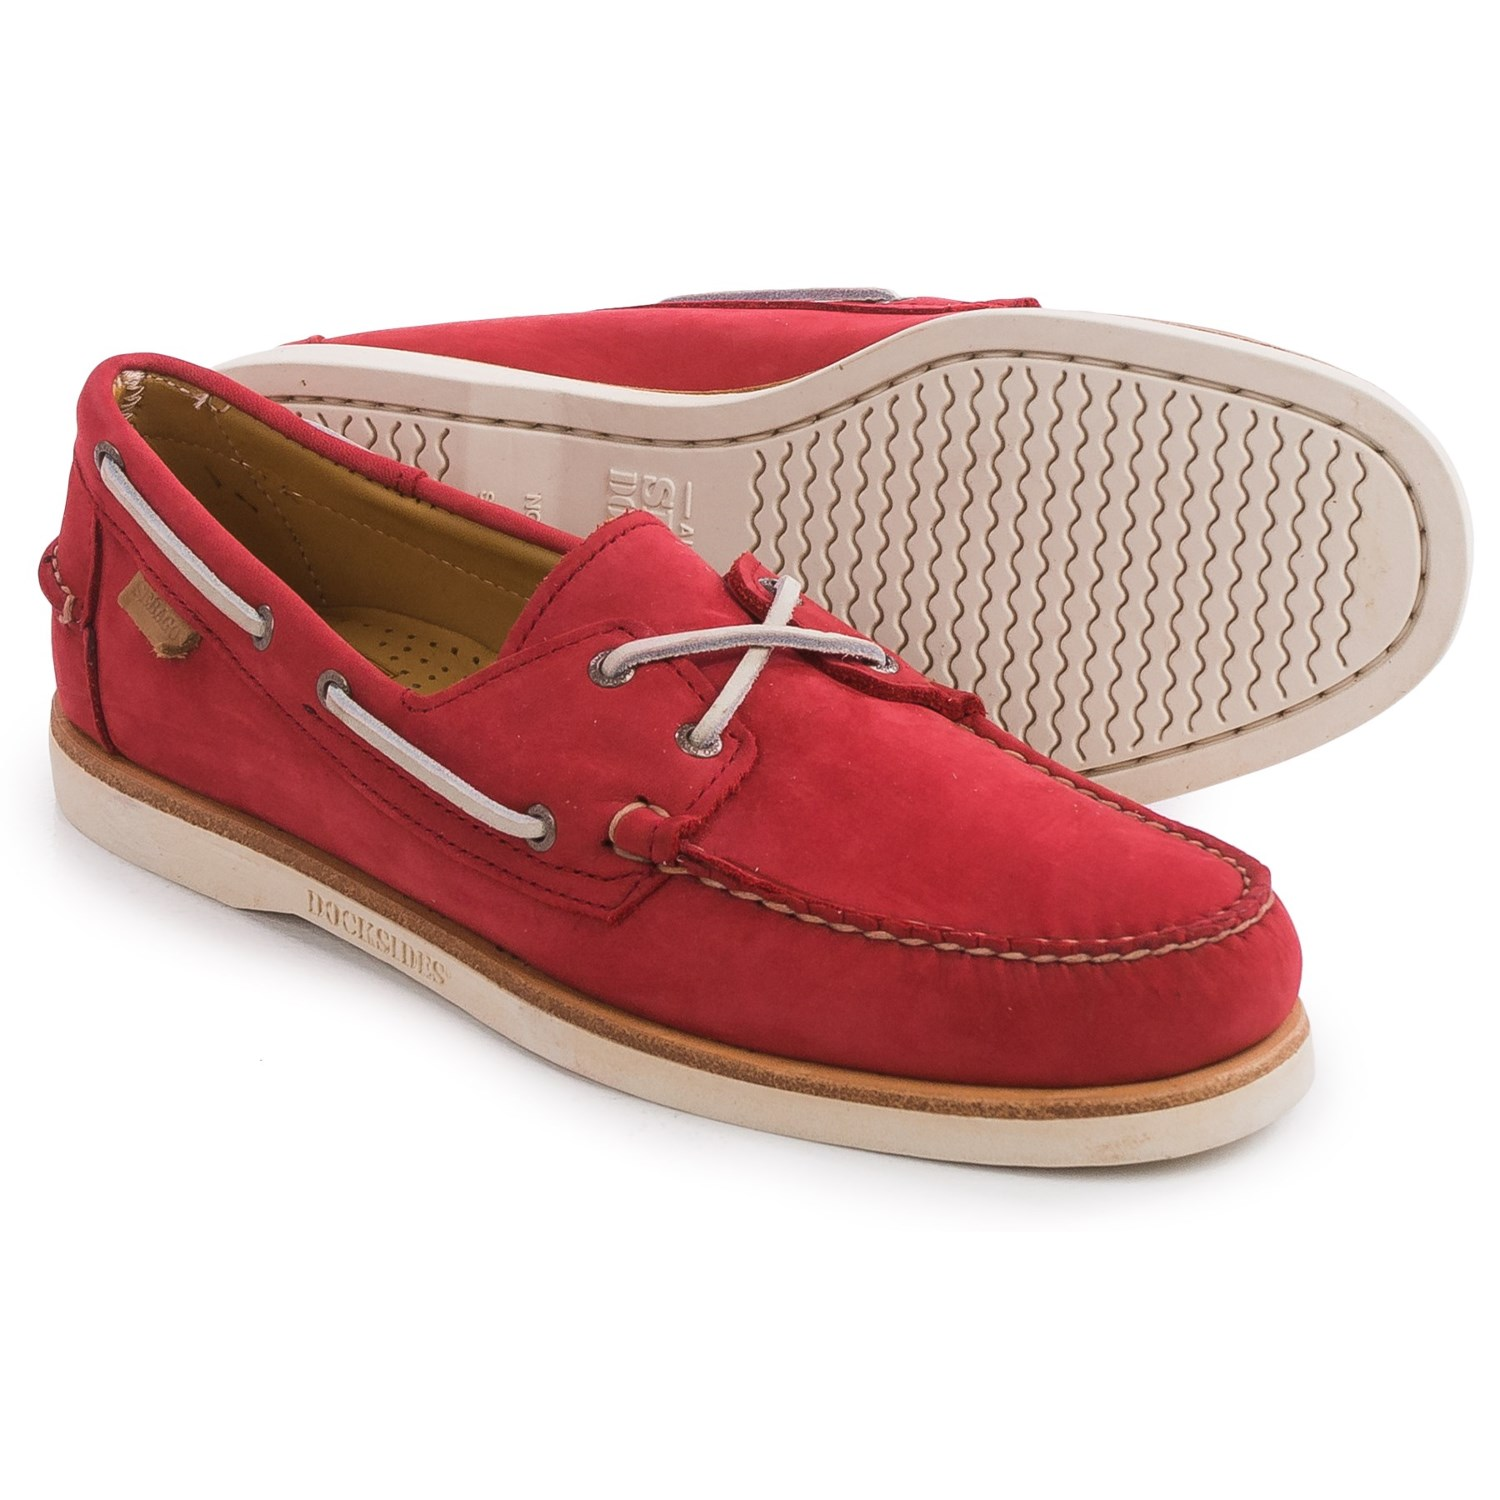 Where To Buy Sperry Shoes In Toronto